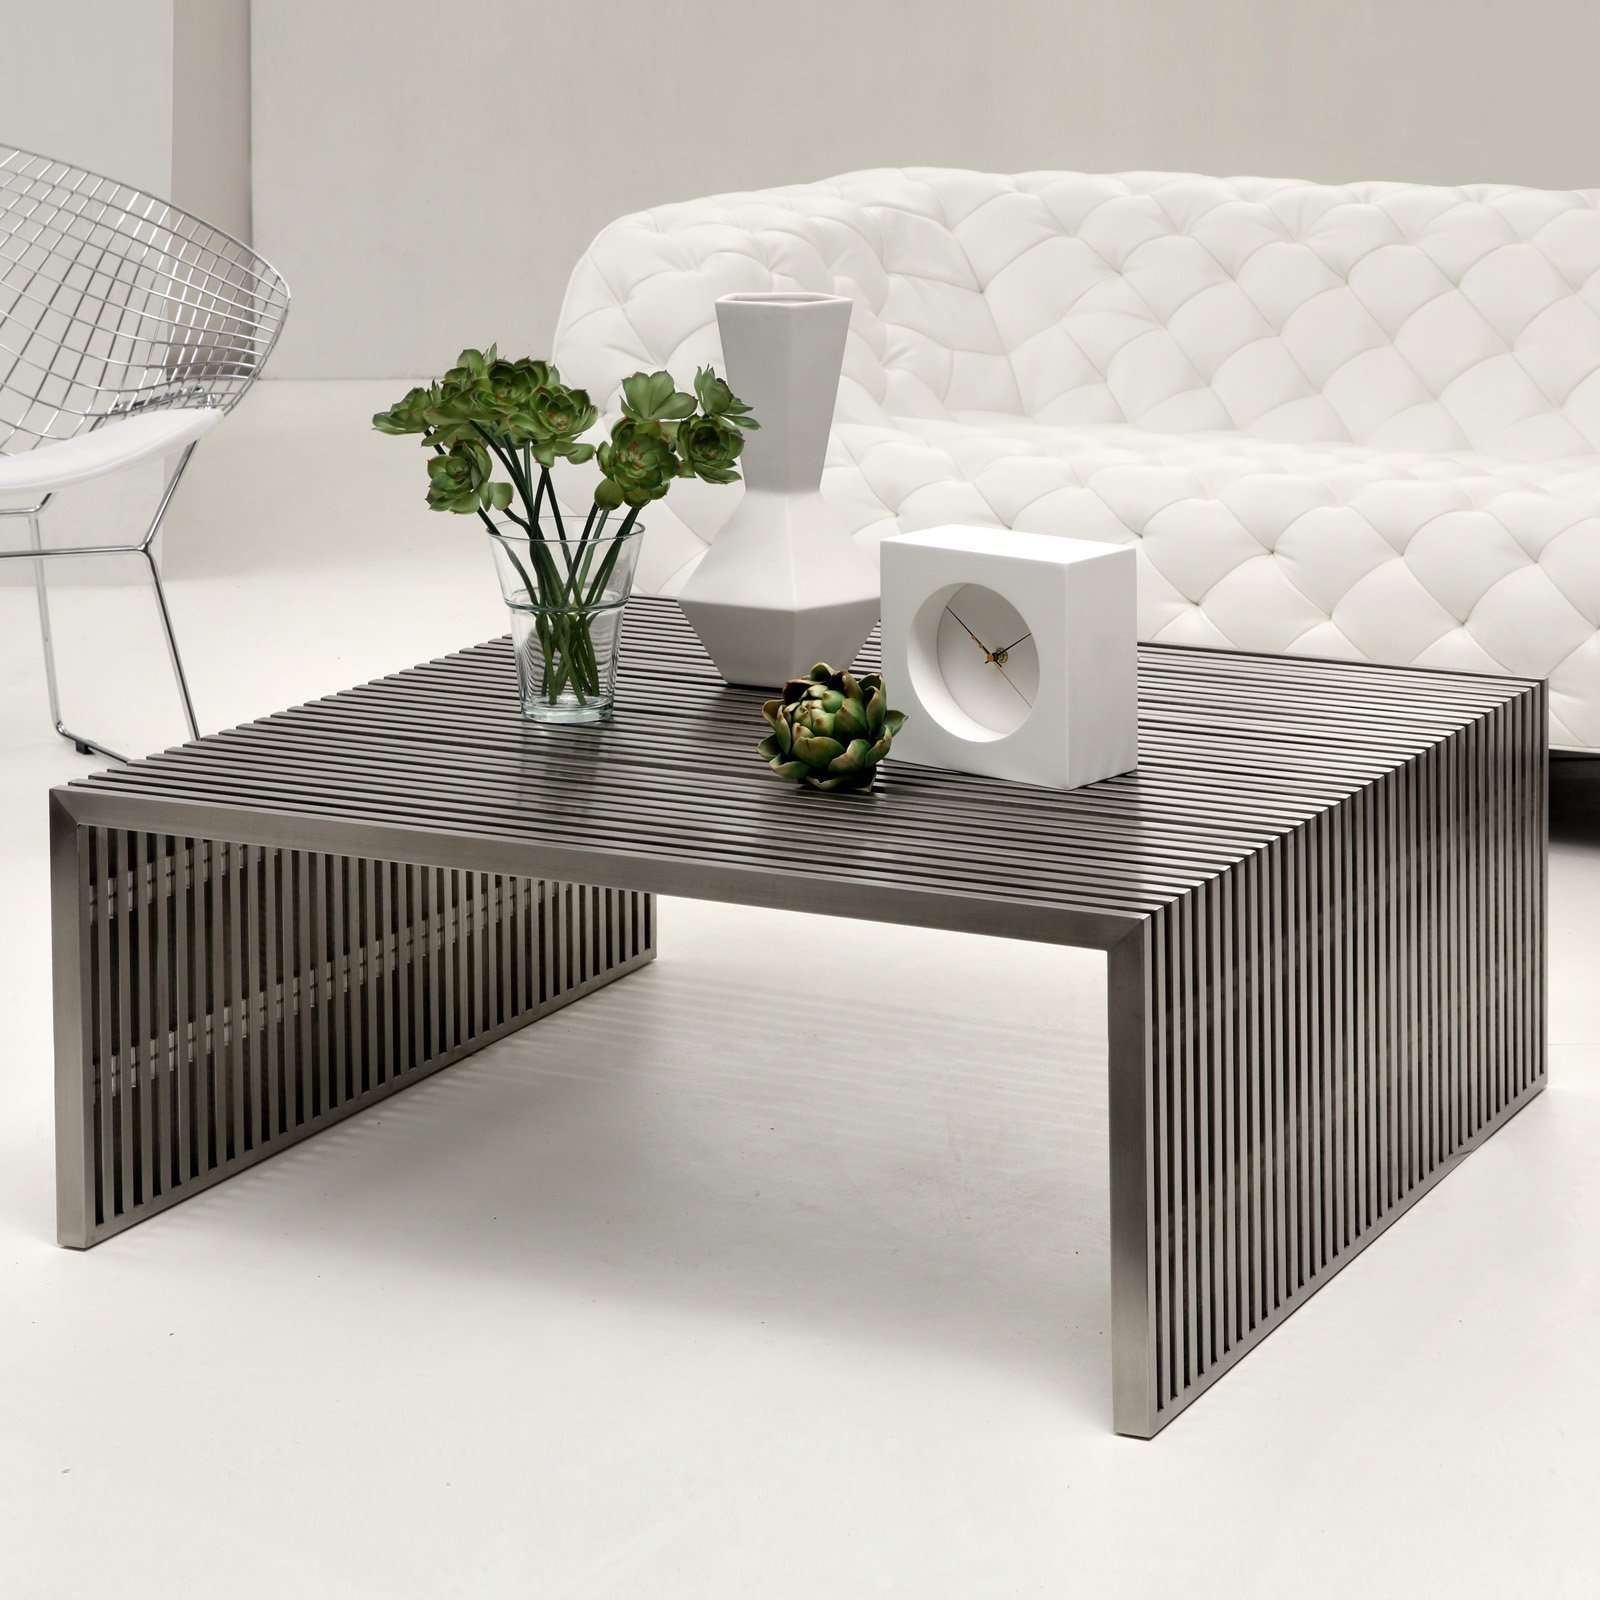 Interior : Rustic Wood Coffee Table Sfr Cen Tres Amigos Decobizz Intended For 2018 Large Modern Coffee Tables (View 8 of 20)